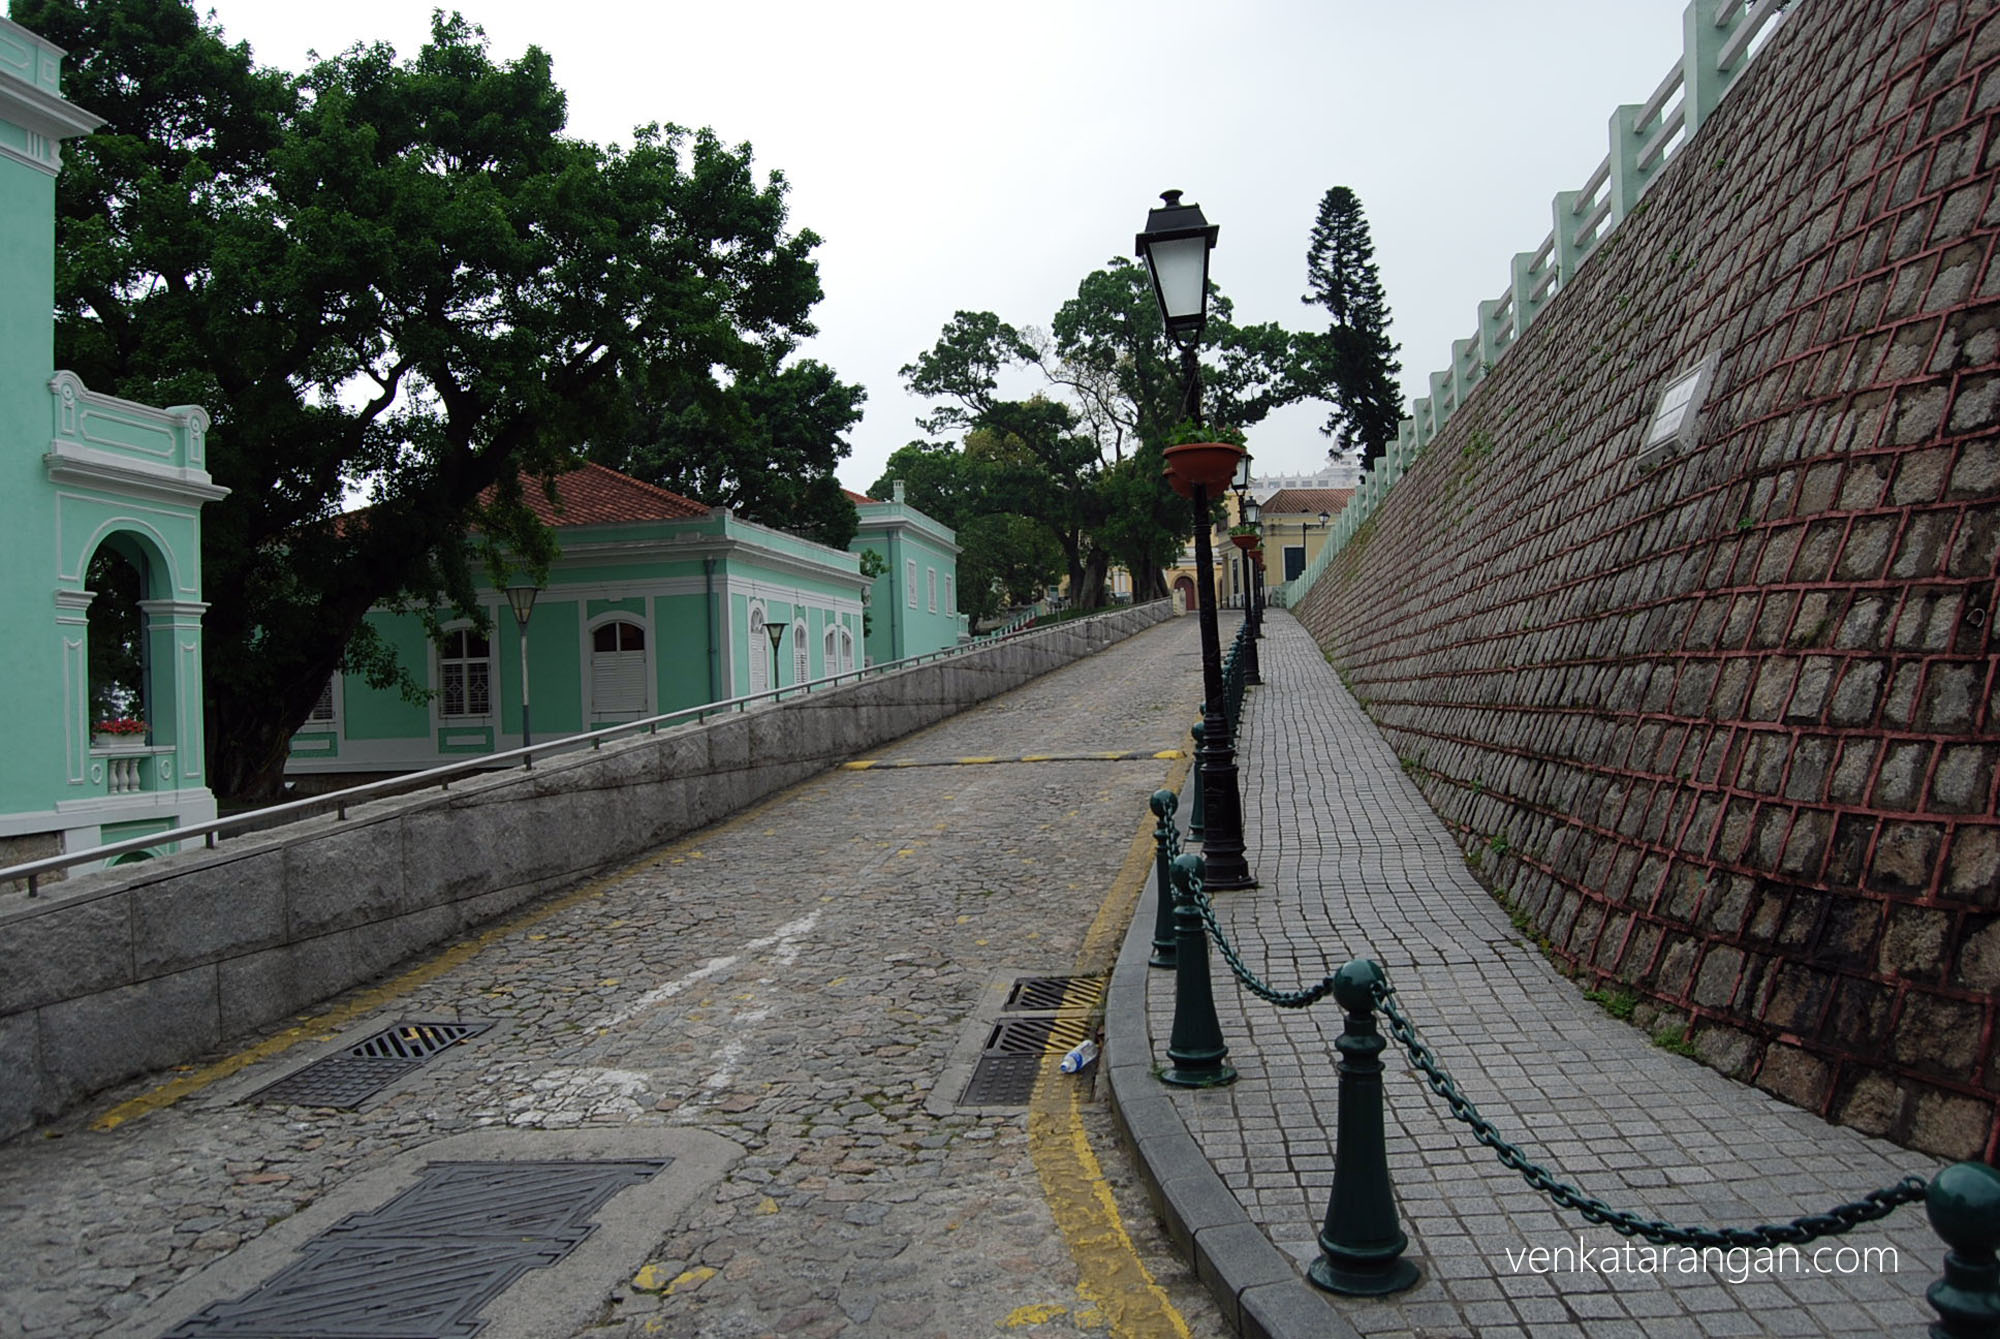 Portuguese colonial buildings